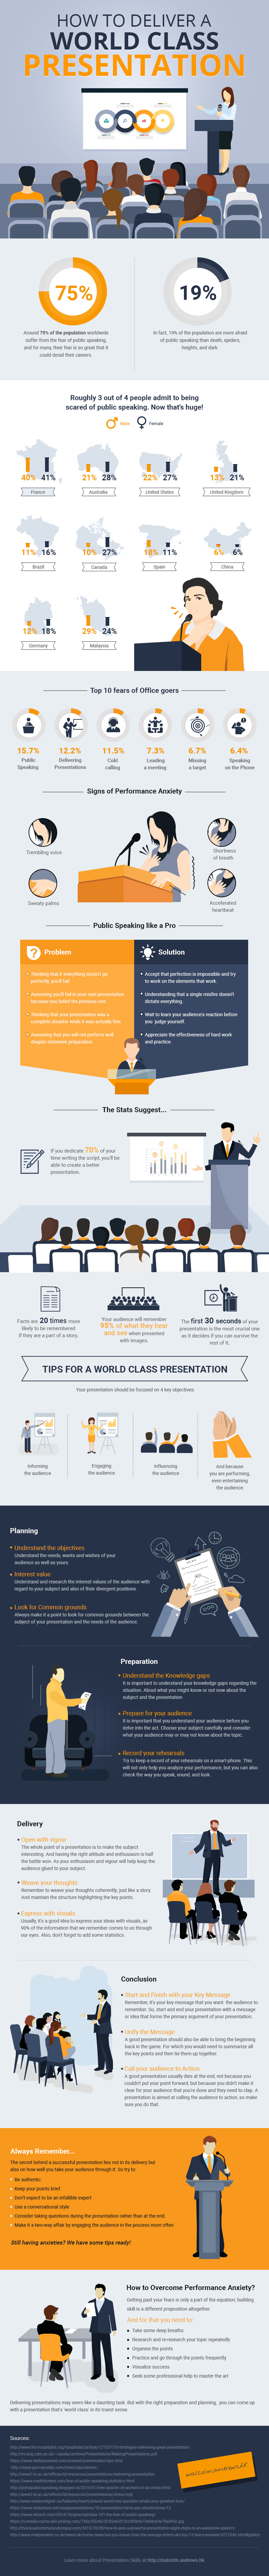 How_to_Deliver_a_World_Class_Presentation